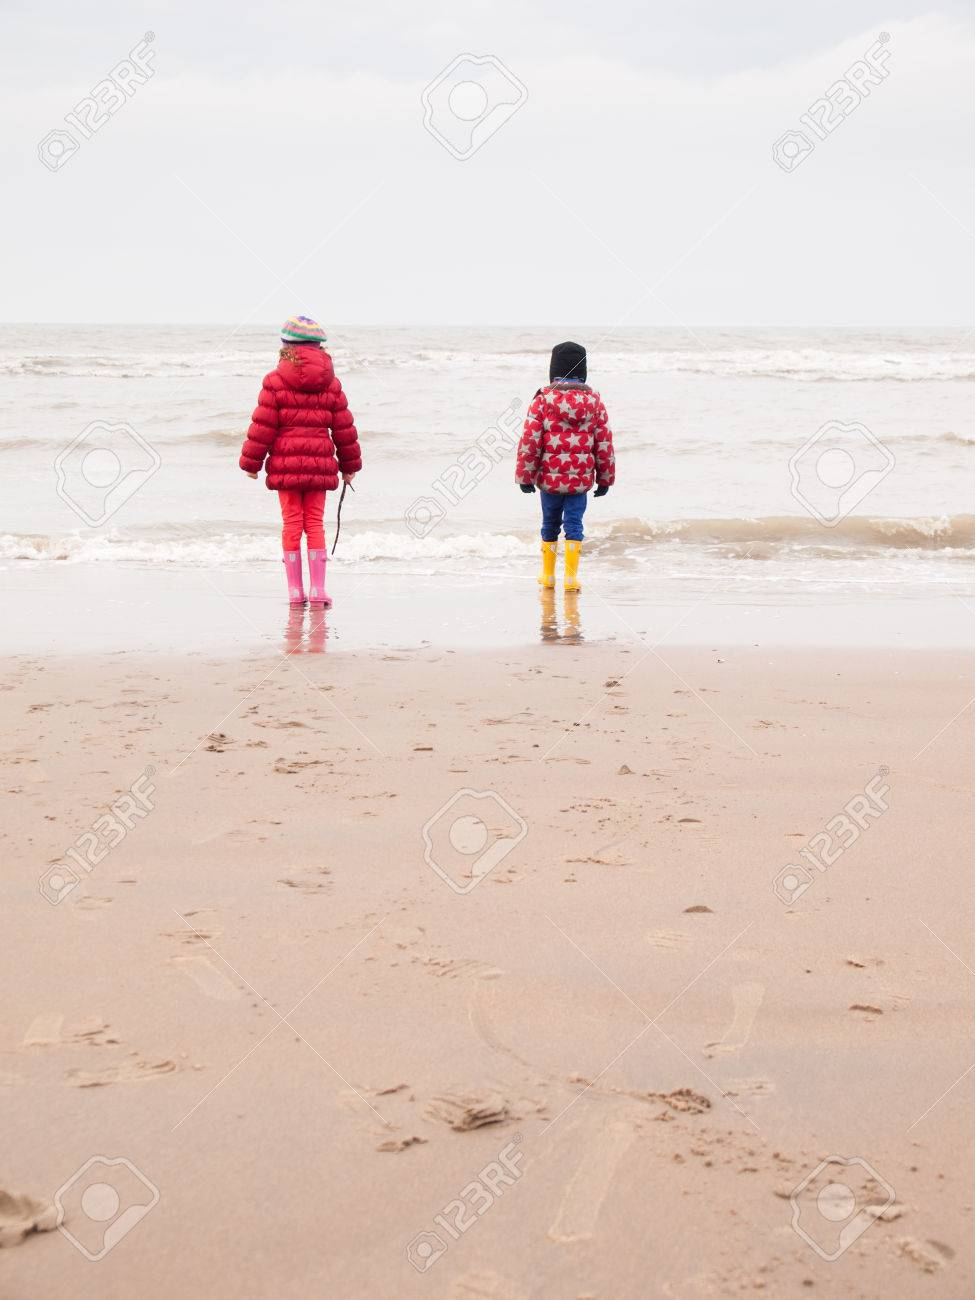 dfa708f781 small boy and girl in winter clothing and rubber boots on a winter beach  looking out